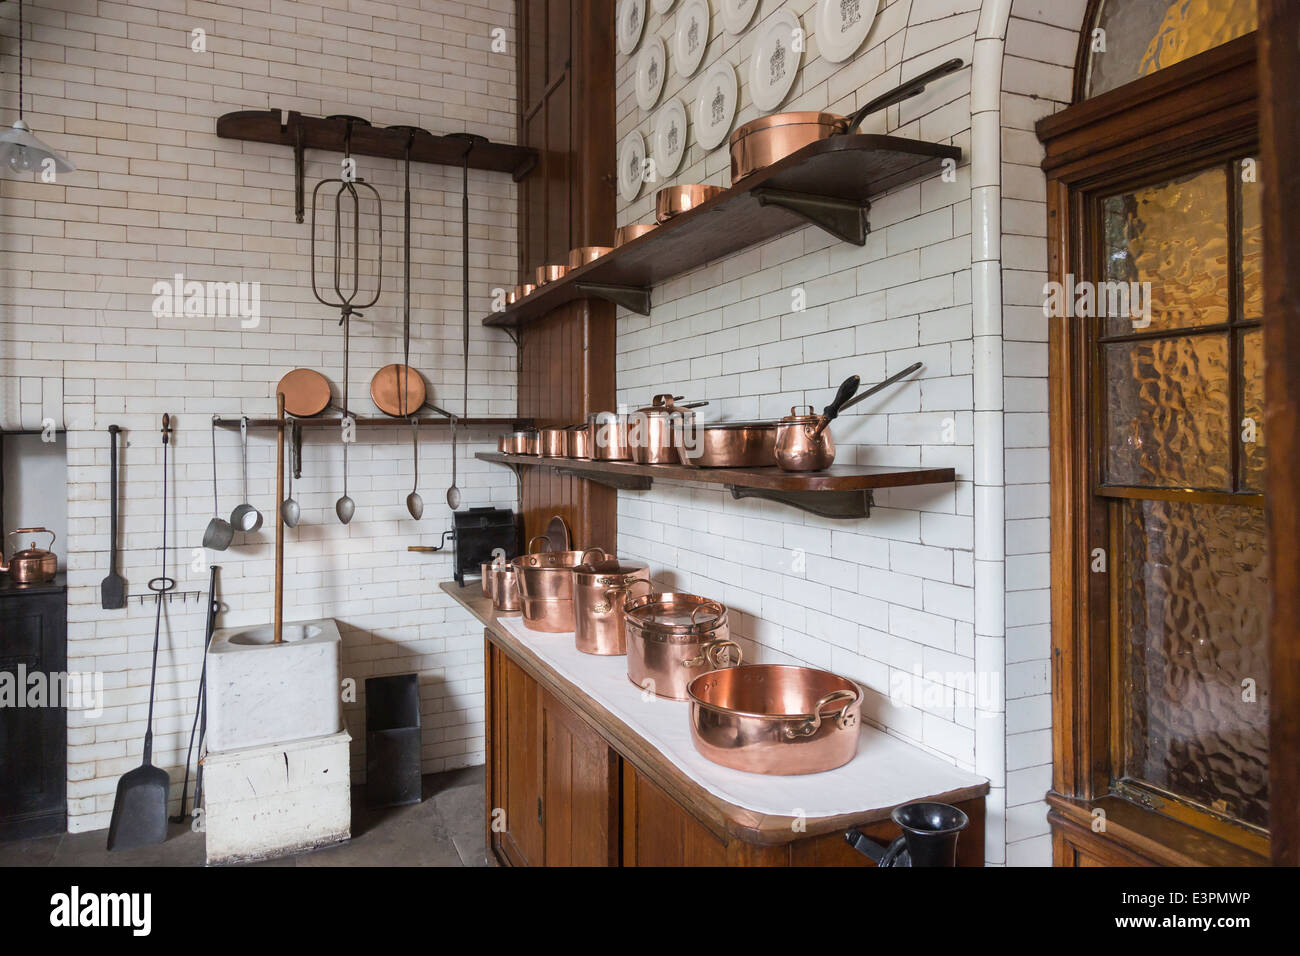 Traditional shiny copper pots, pans and saucepans in old-fashioned white tiled kitchen in Tatton Park, Cheshire - Stock Image